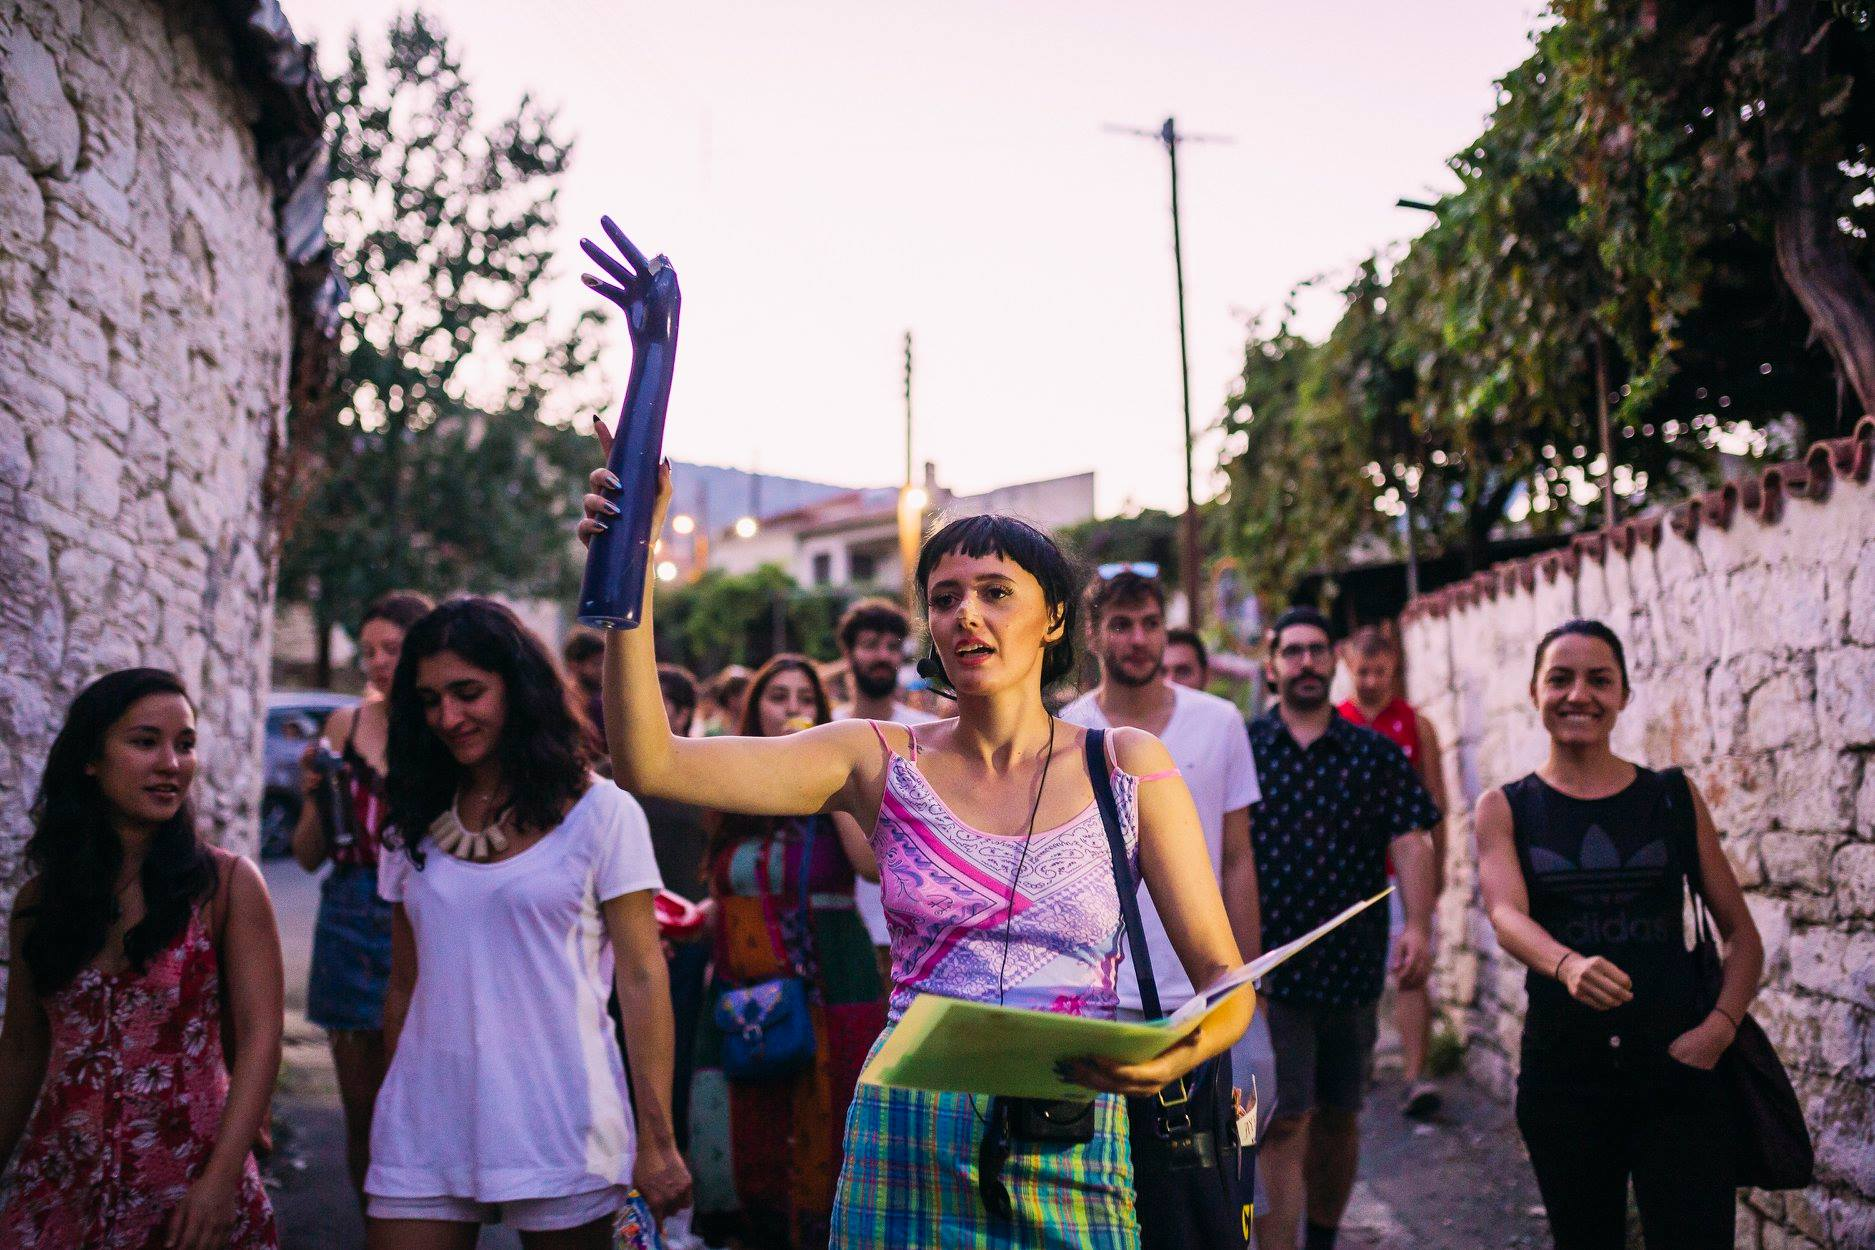 Picture by Emma Louise Charalambous, Xarkis festival